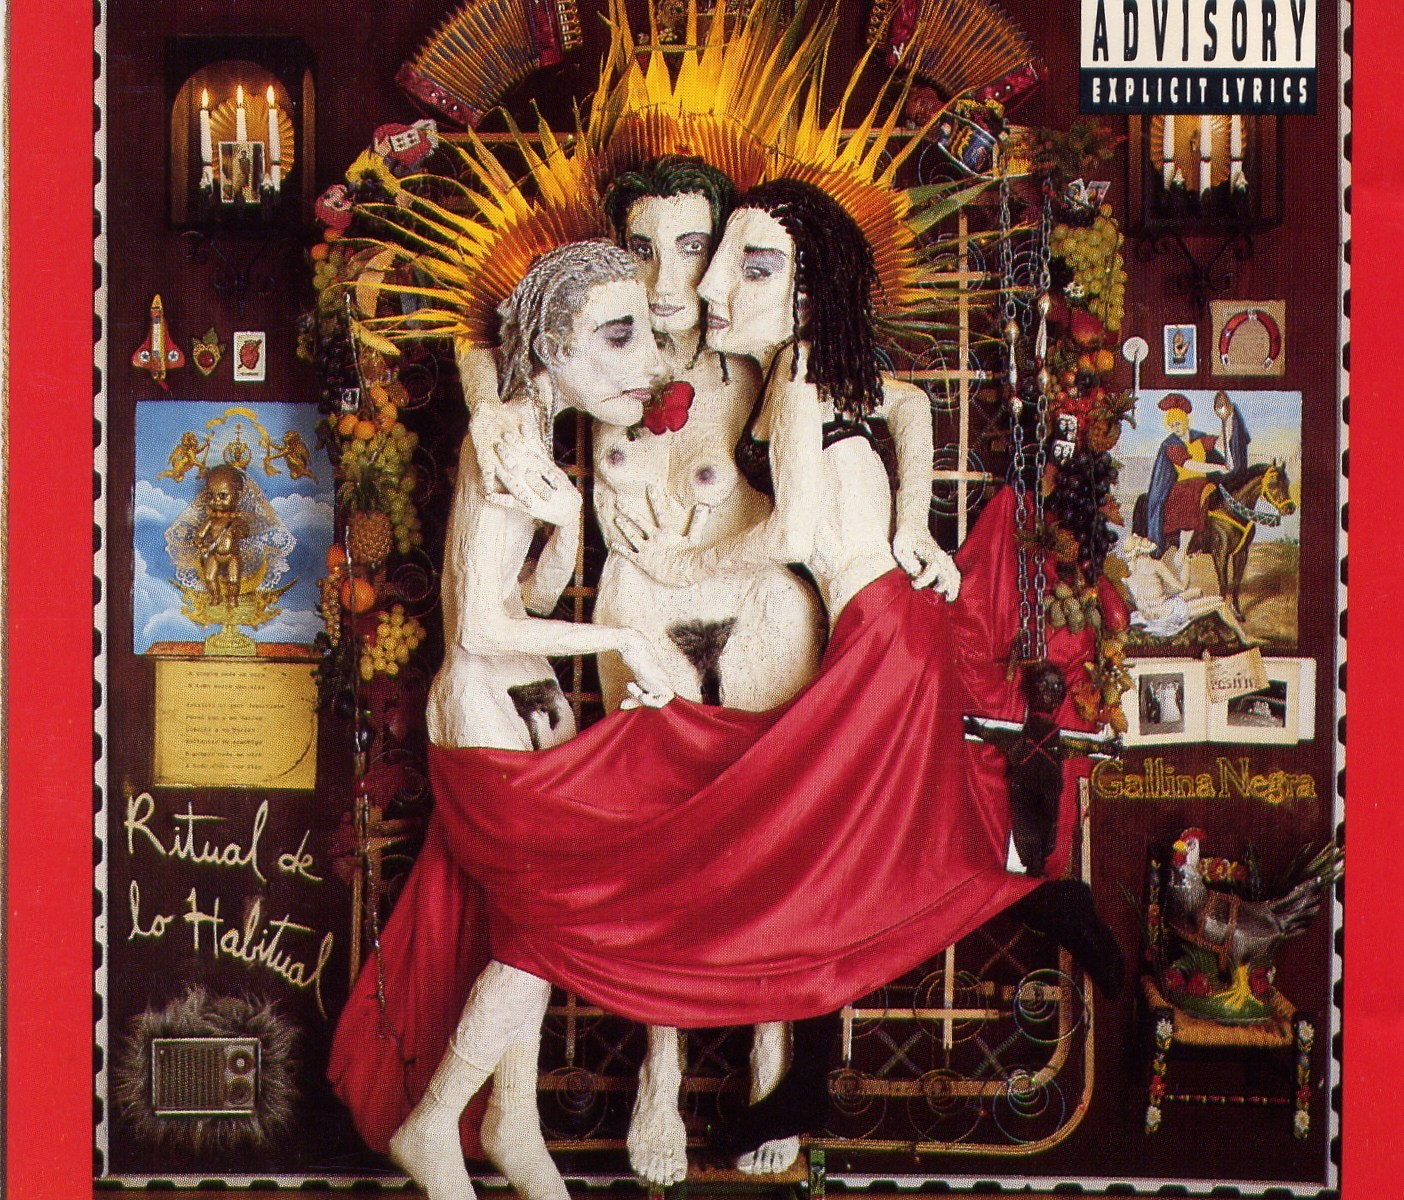 Ritual De Lo Habitual album cover